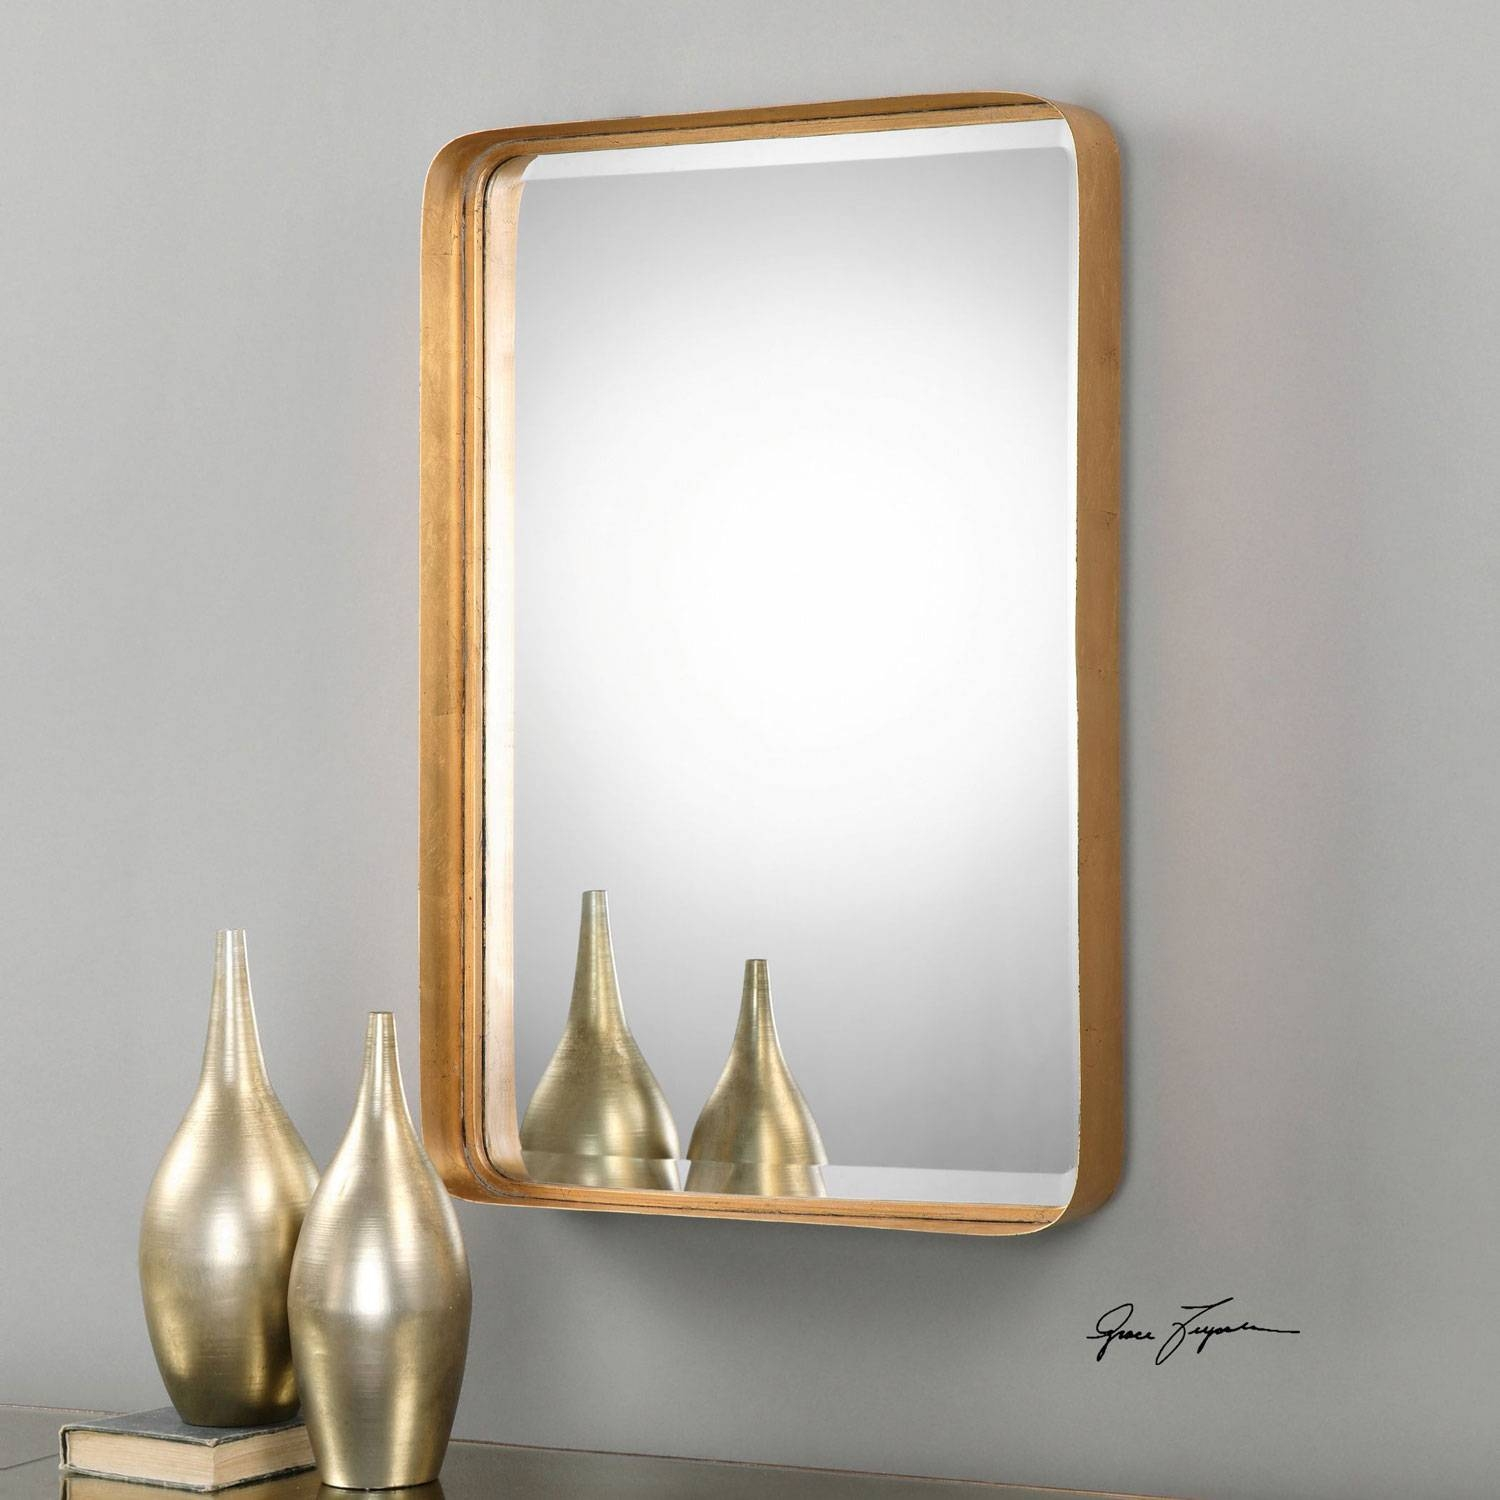 Crofton Antique Gold Mirror Uttermost Wall Mirror Mirrors Home Decor Within Antique Gold Mirrors (View 5 of 25)